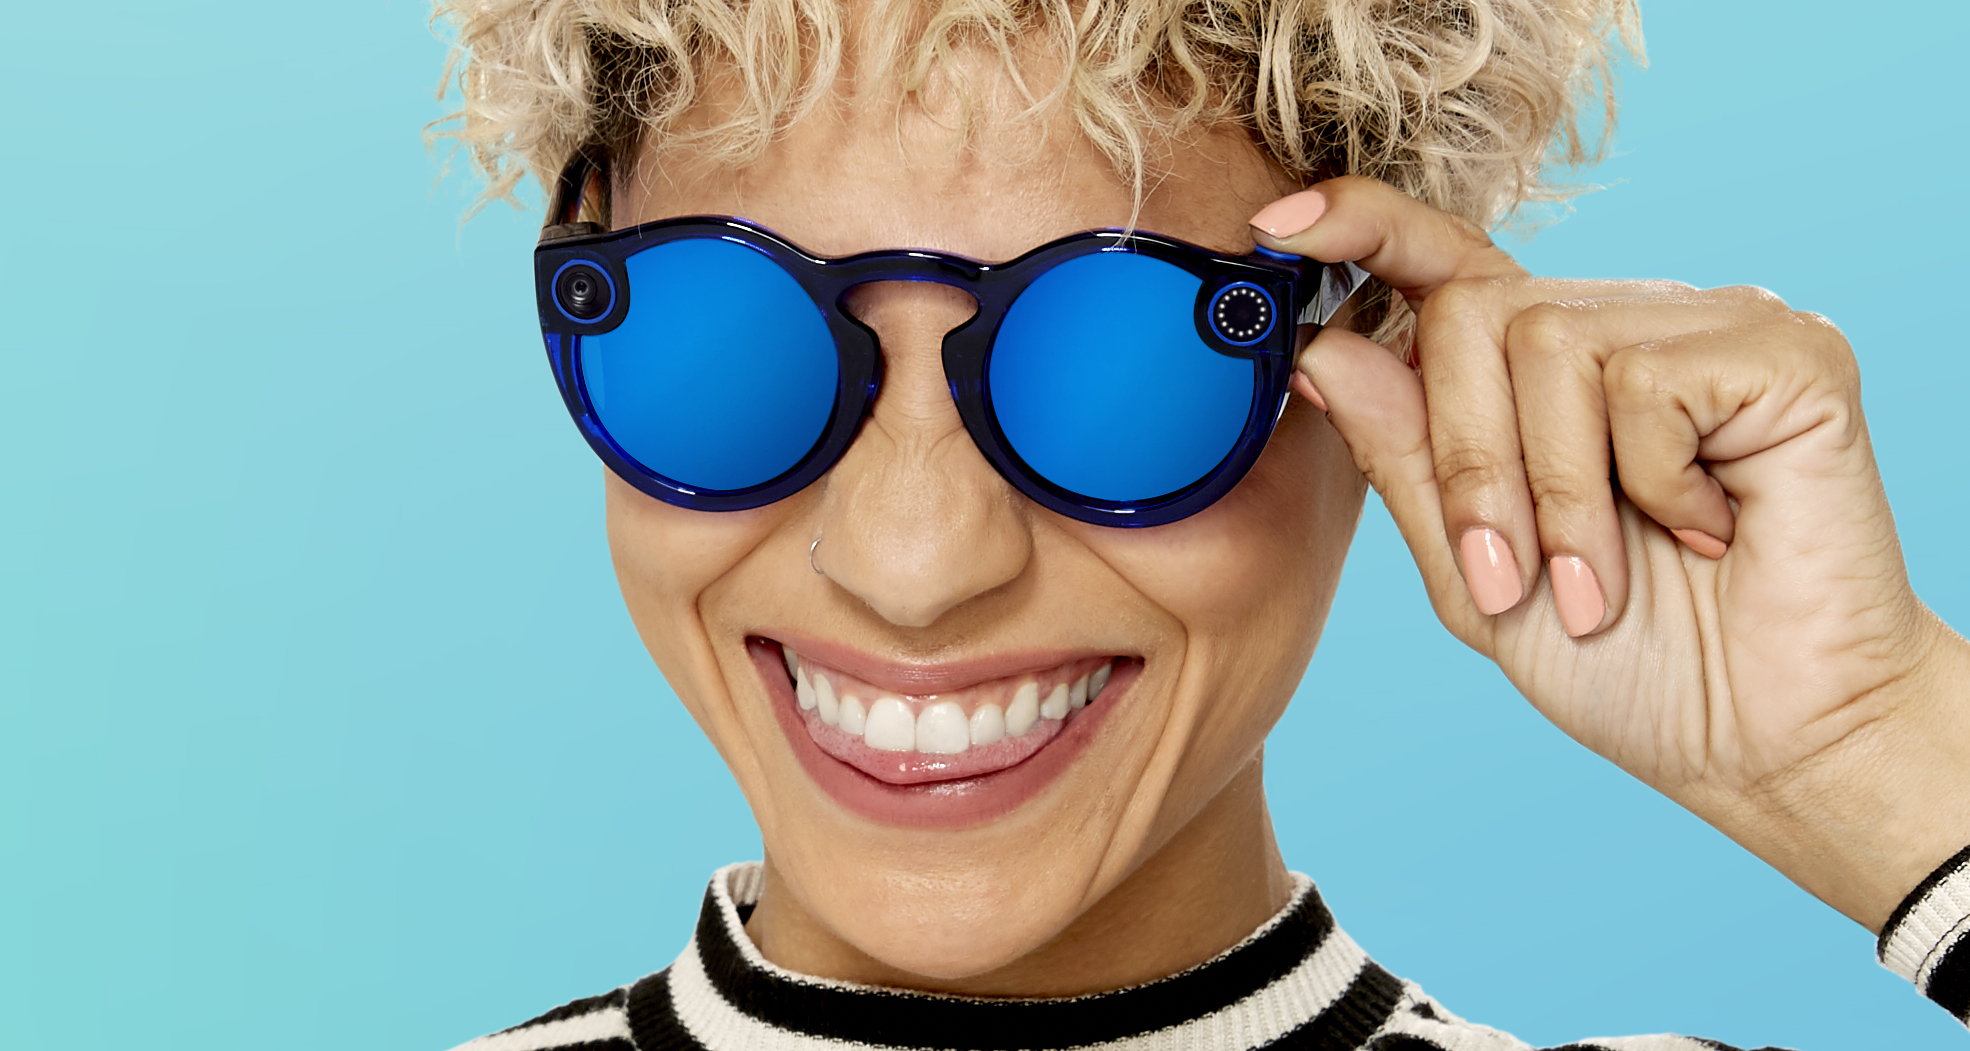 Snapchat's New Spectacles Are Water-Resistant and 'Made for Summer'